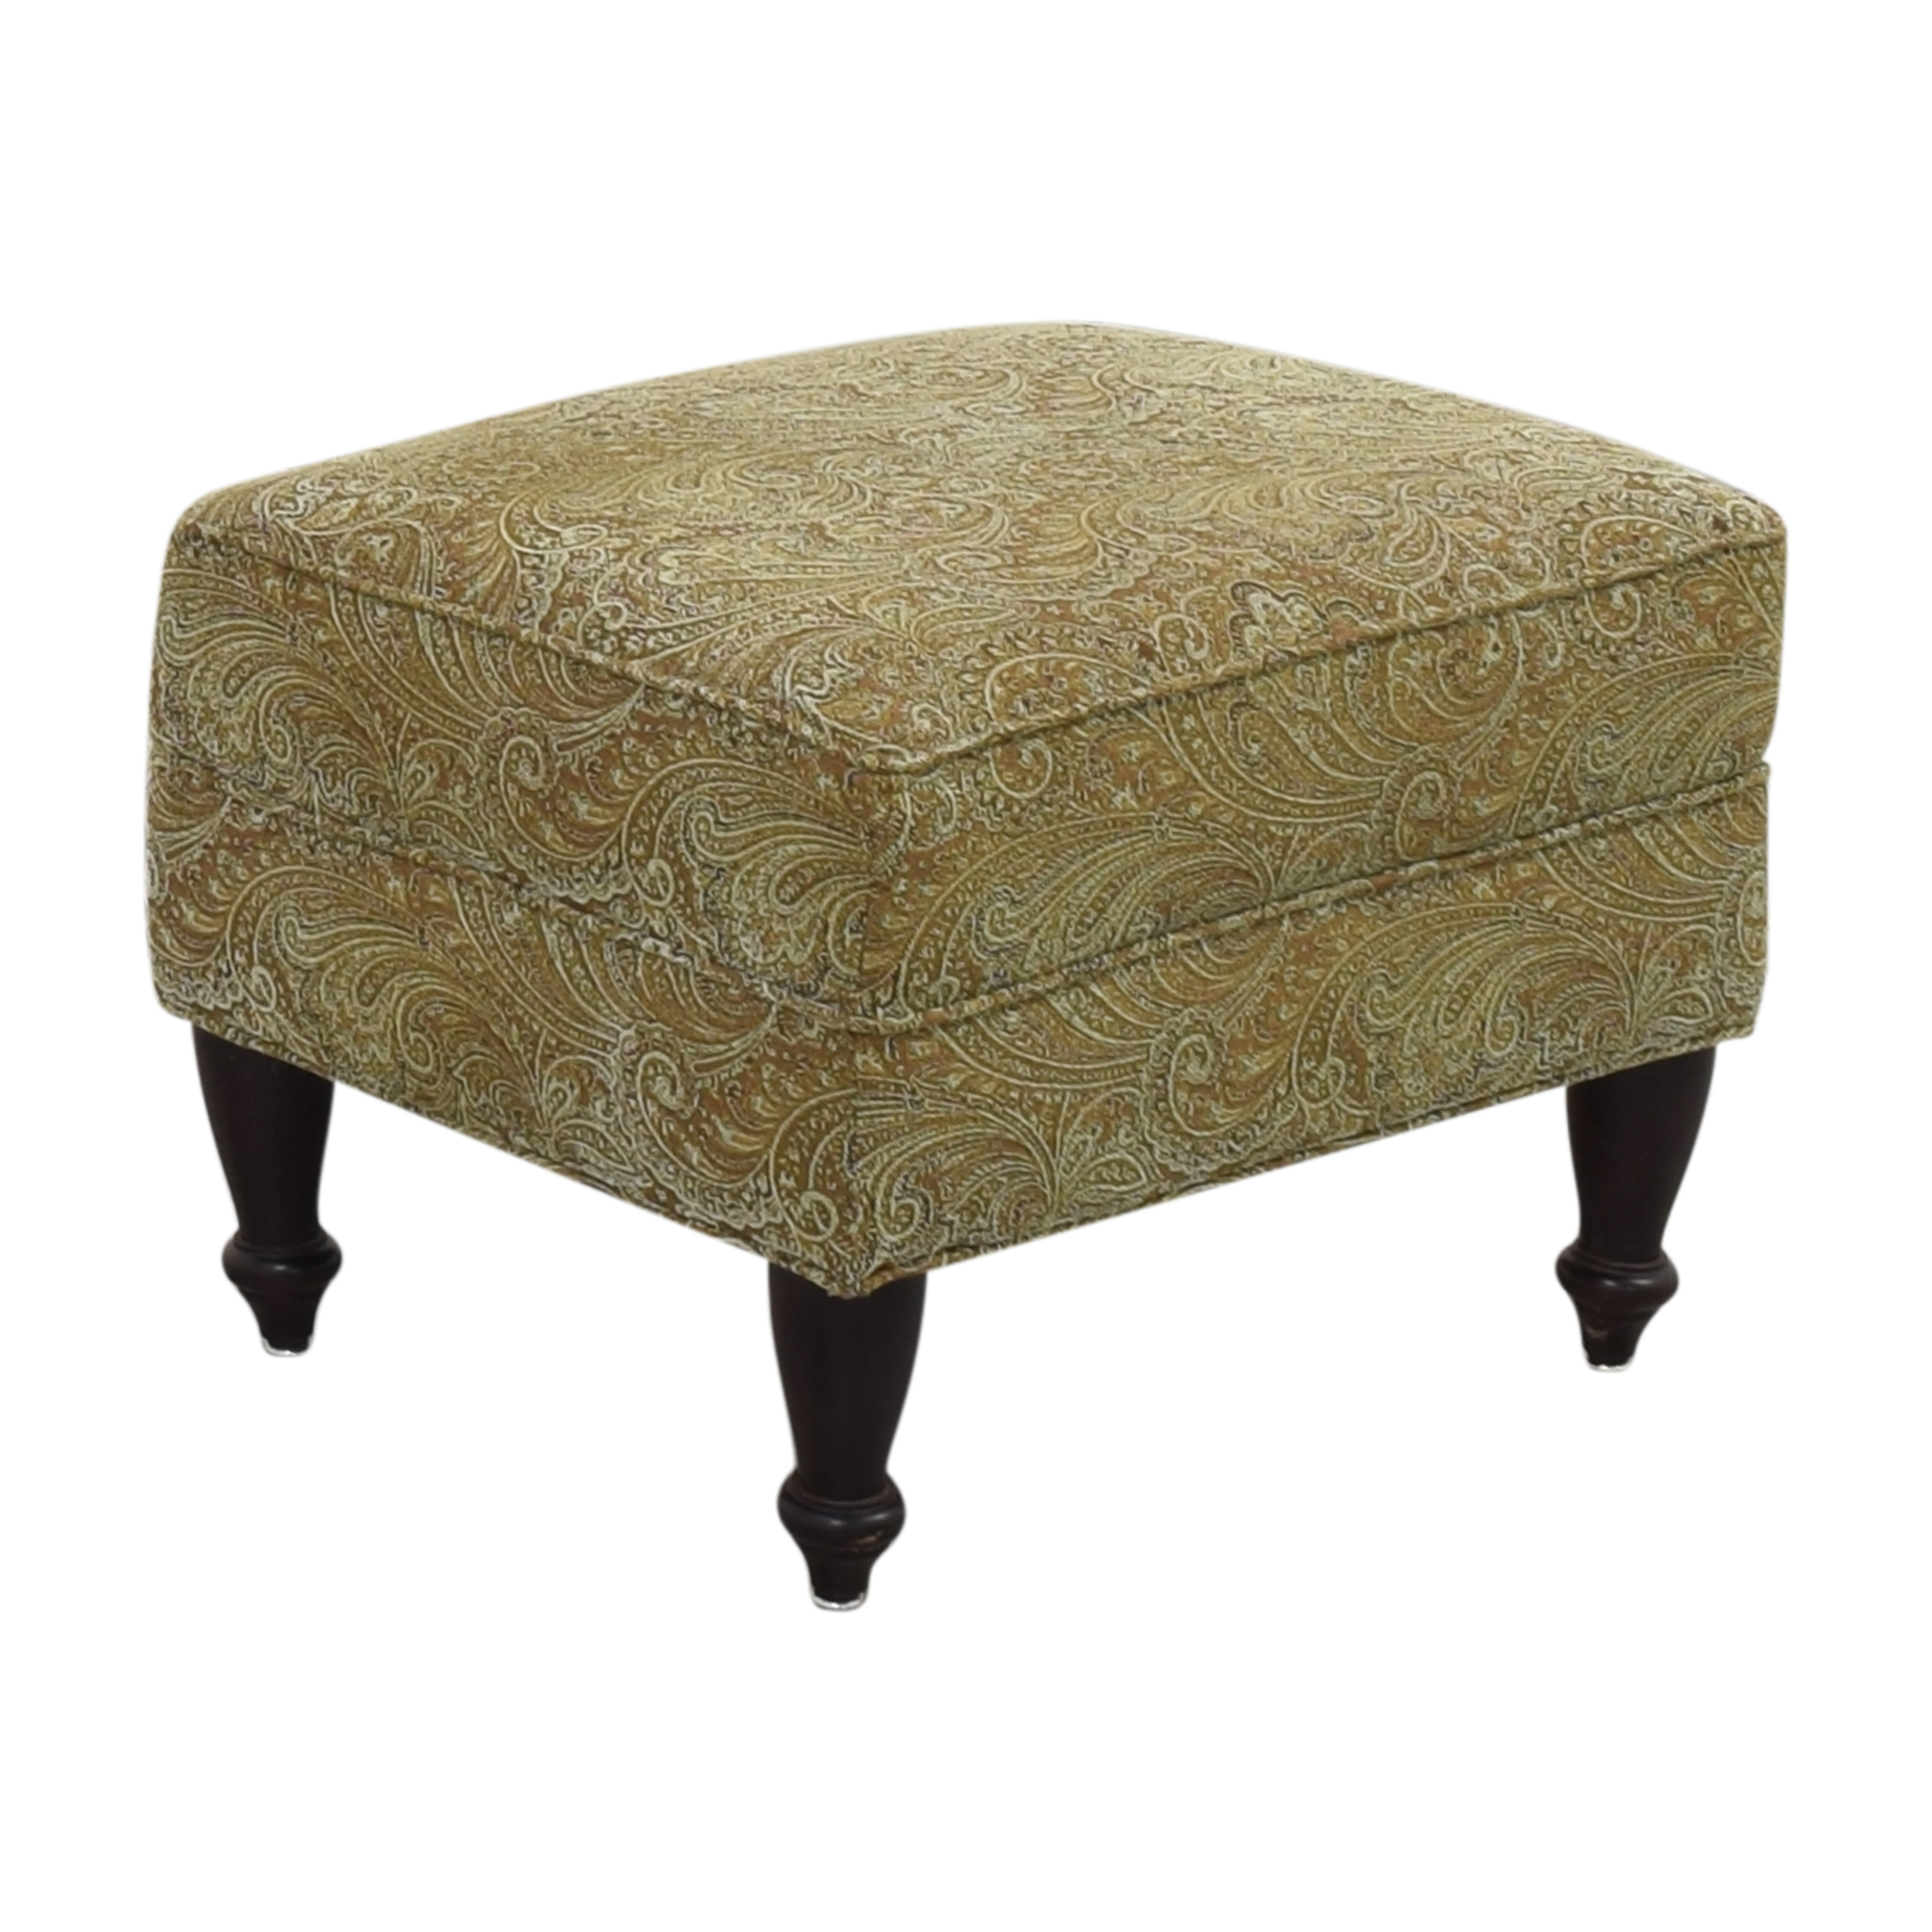 Rowe Furniture Rowe Furniture Upholstered Ottoman coupon